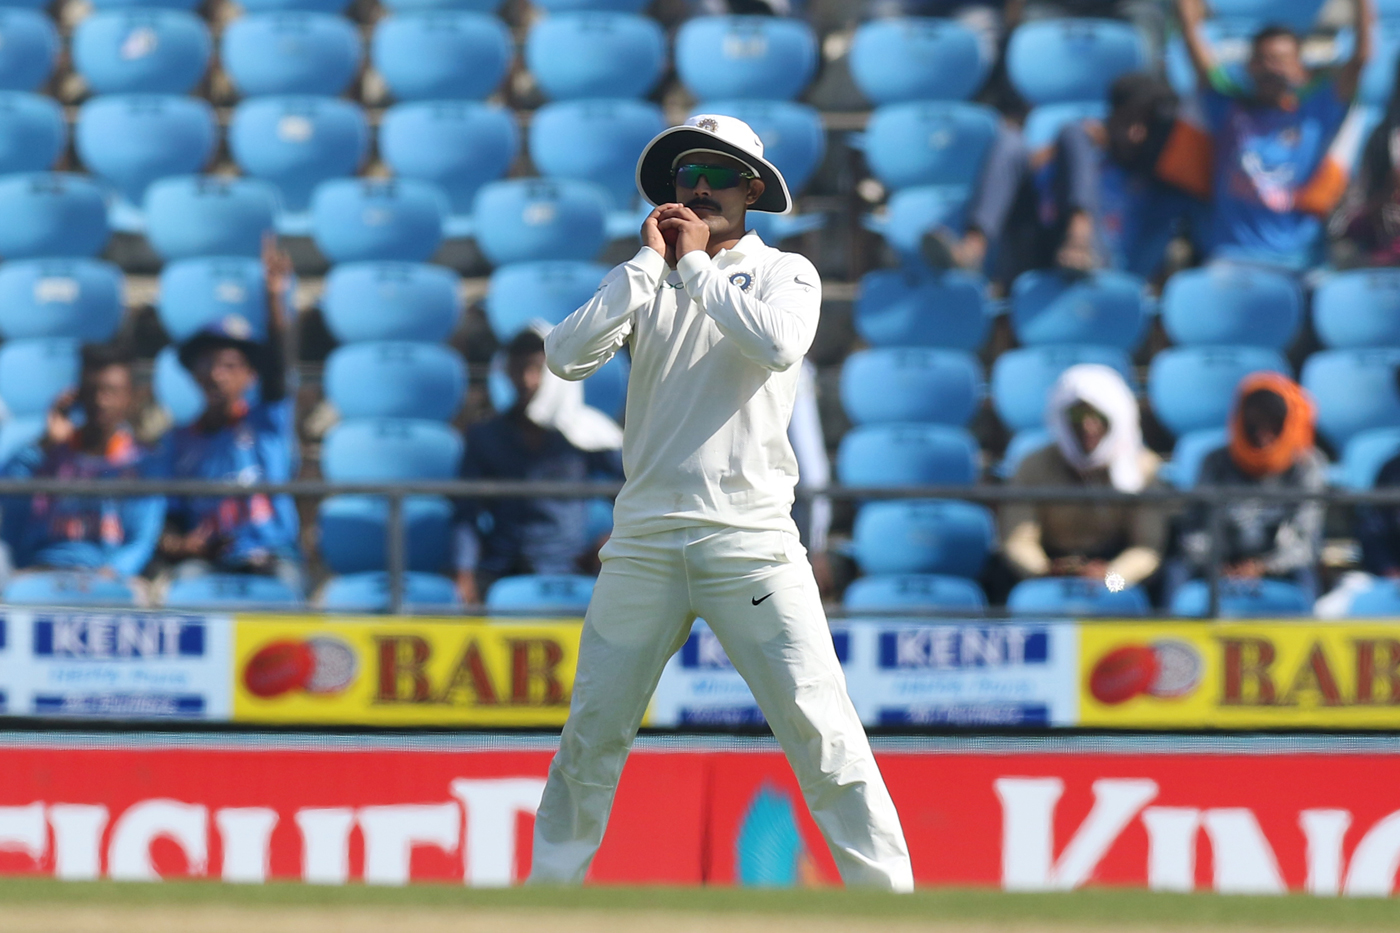 Cape Town Test: Jadeja down with flu, Dhawan declared fit